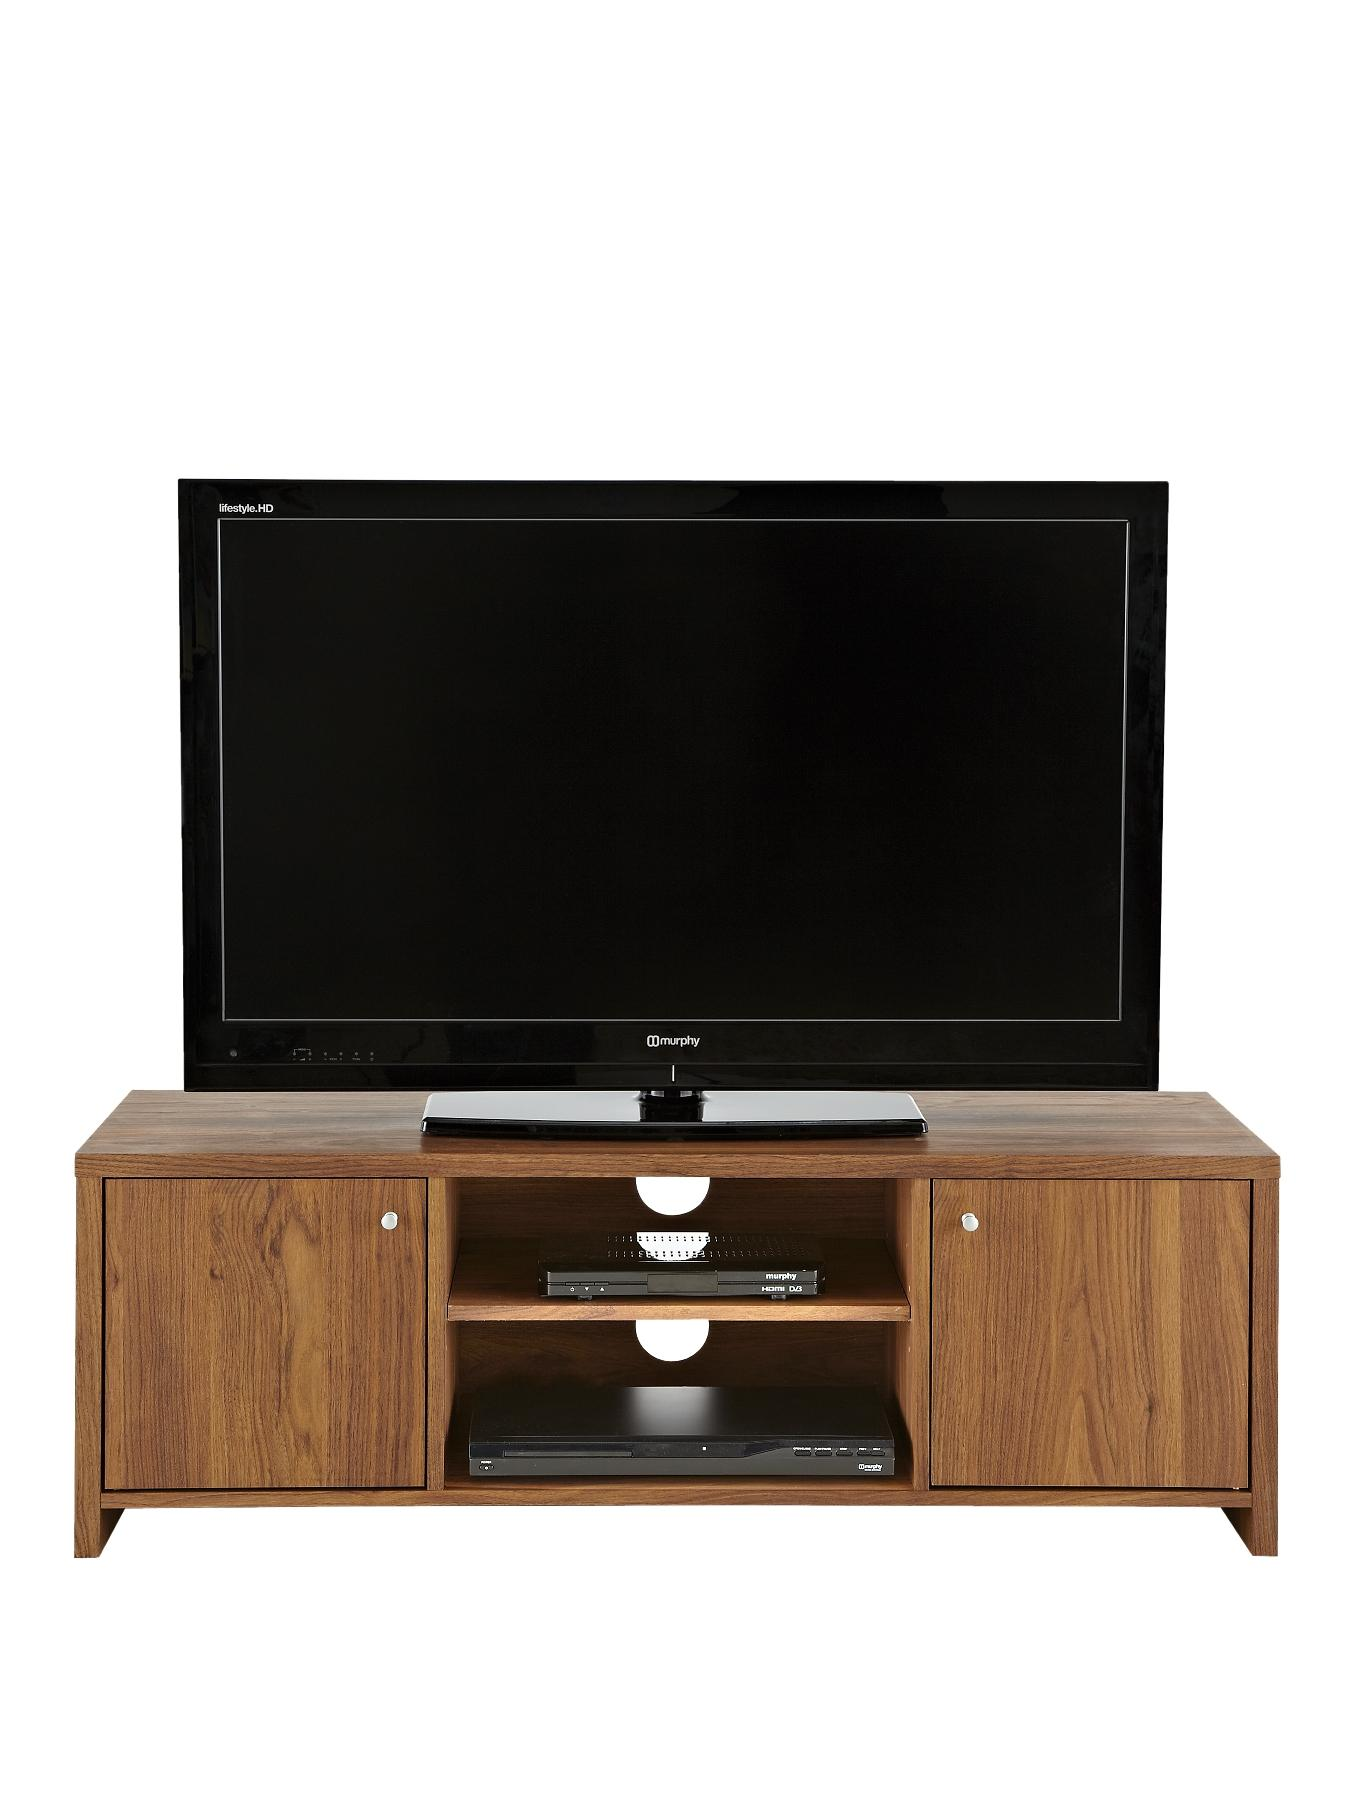 Tokyo TV Unit - fits up to 52 inch TV